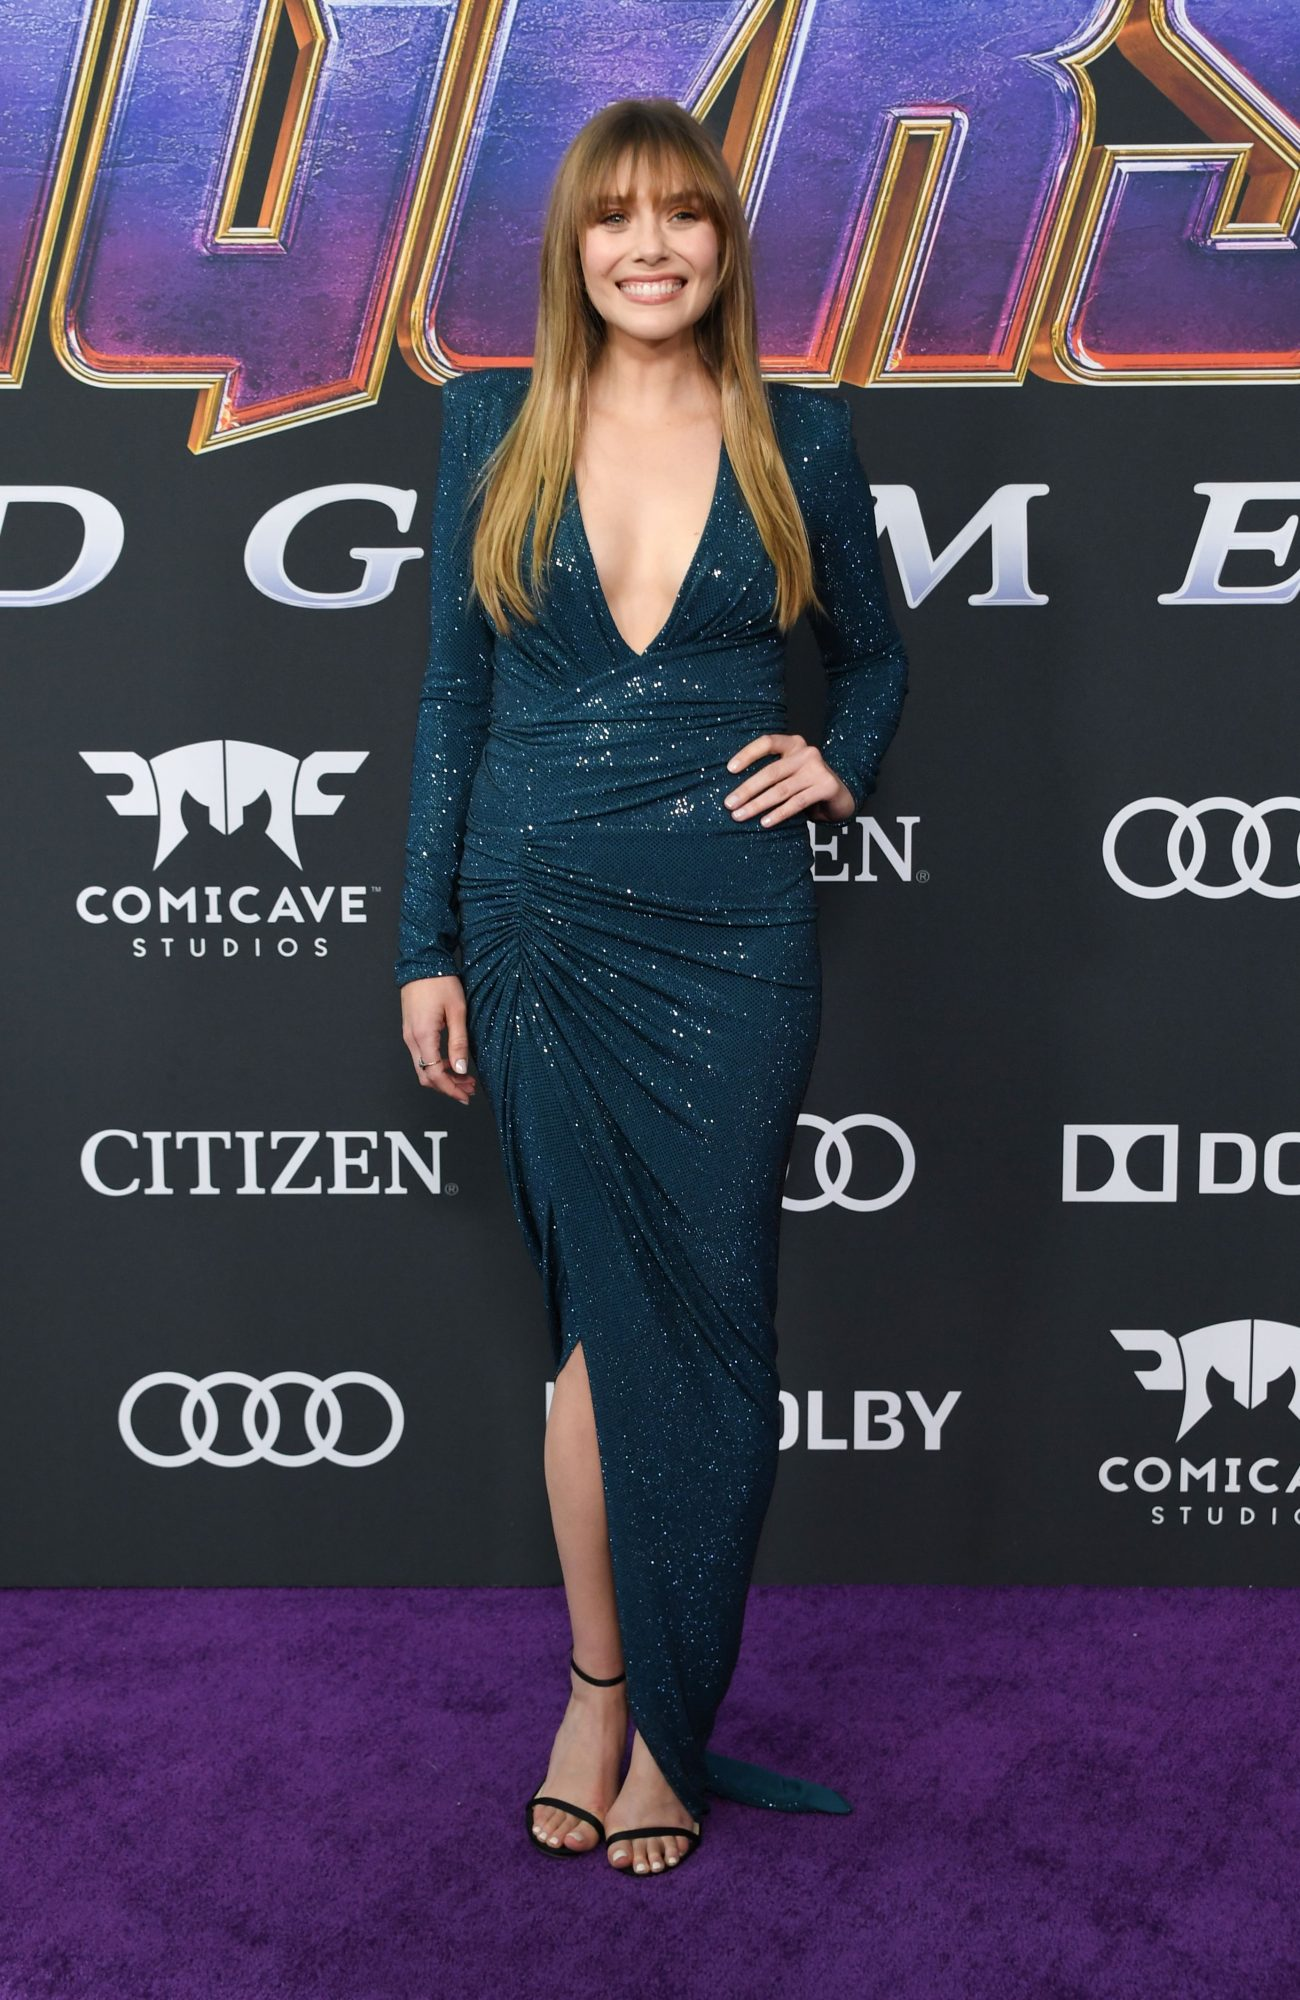 """US actress Elizabeth Olsen arrives for the World premiere of Marvel Studios' """"Avengers: Endgame"""" at the Los Angeles Convention Center on April 22, 2019 in Los Angeles. (Photo by VALERIE MACON/ AFP/ Getty Images)"""